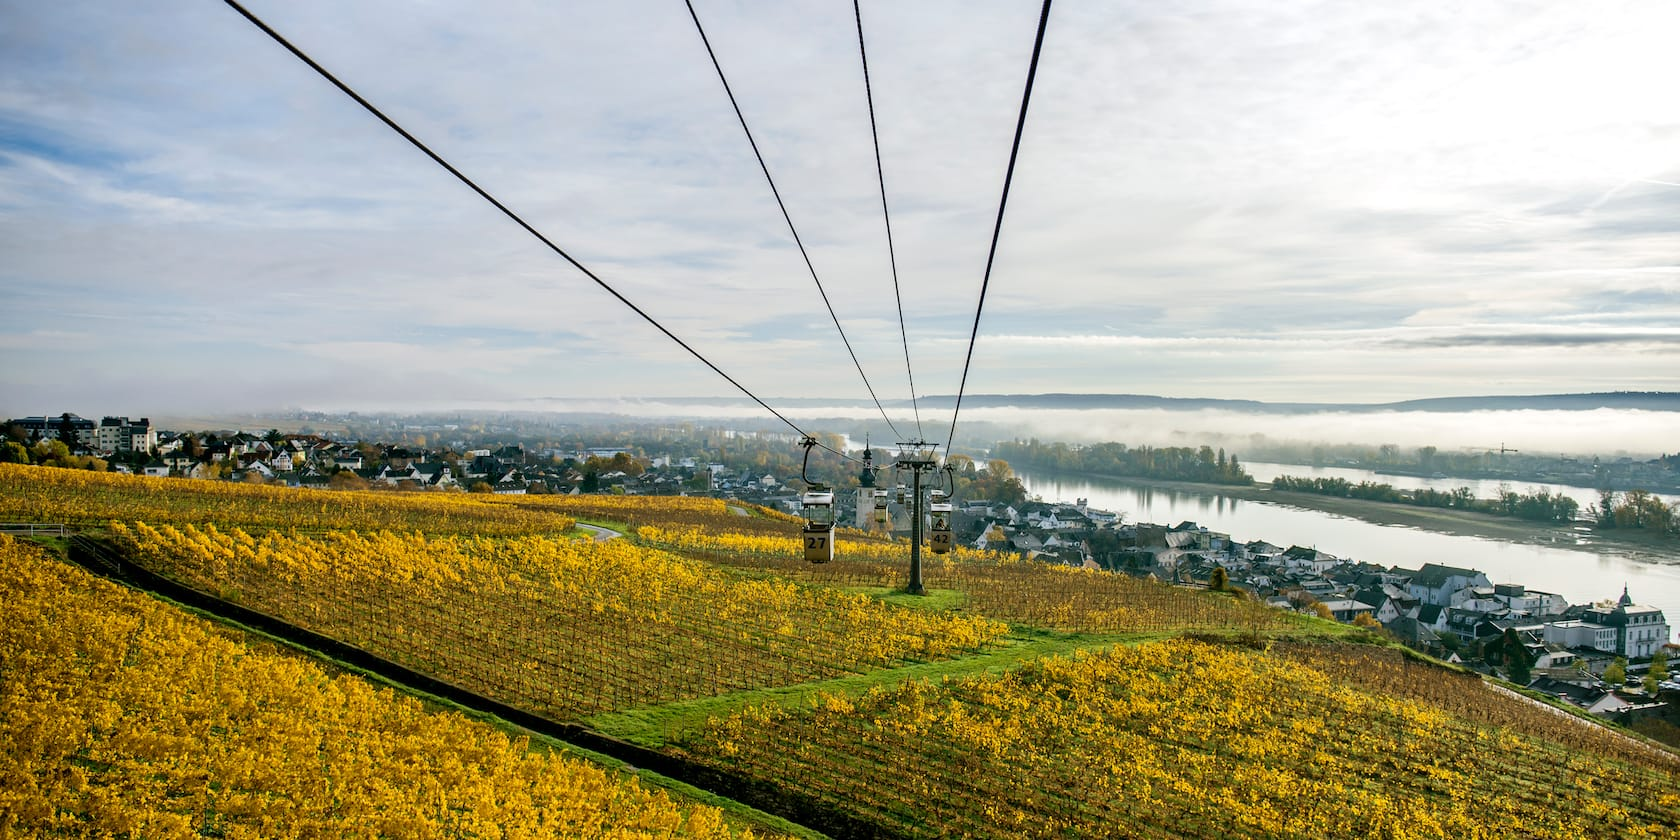 A gondola rides over a large field with the Rhine River and the town of Rüdesheim in the distance